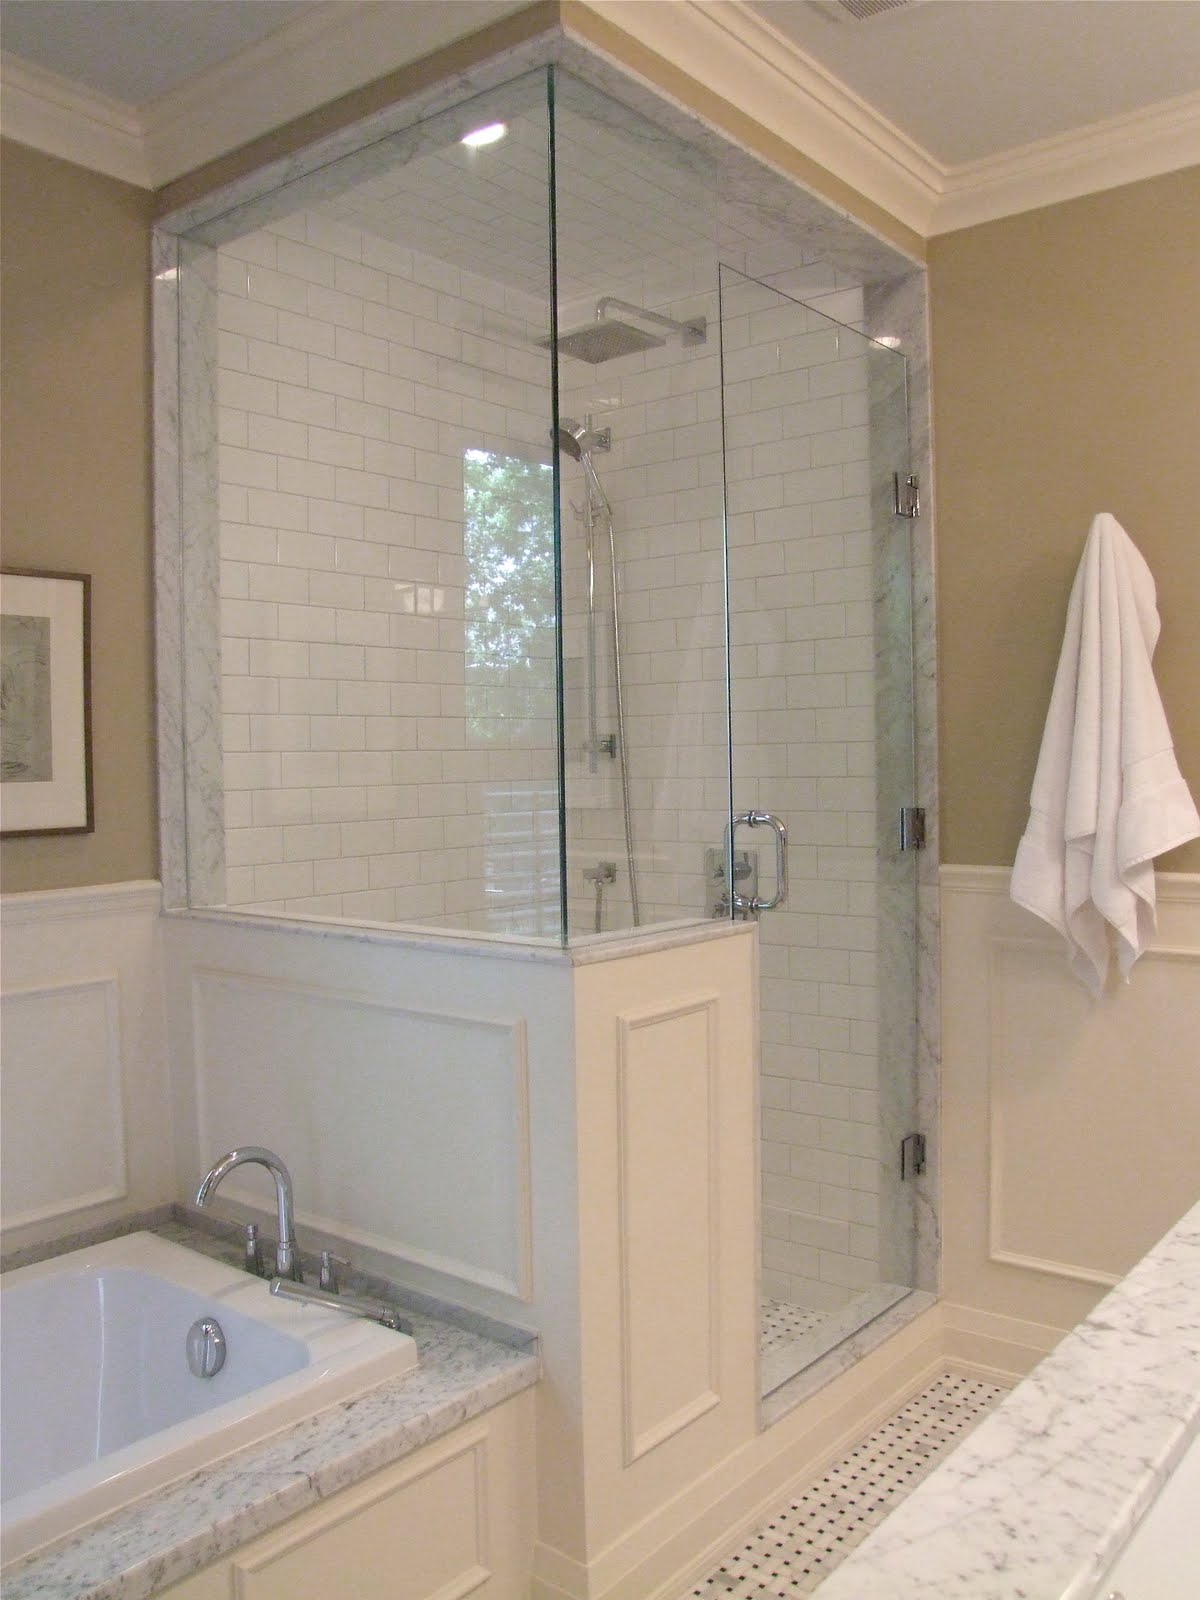 Creed after e design bathroom project part 2 for Bathroom enclosure designs